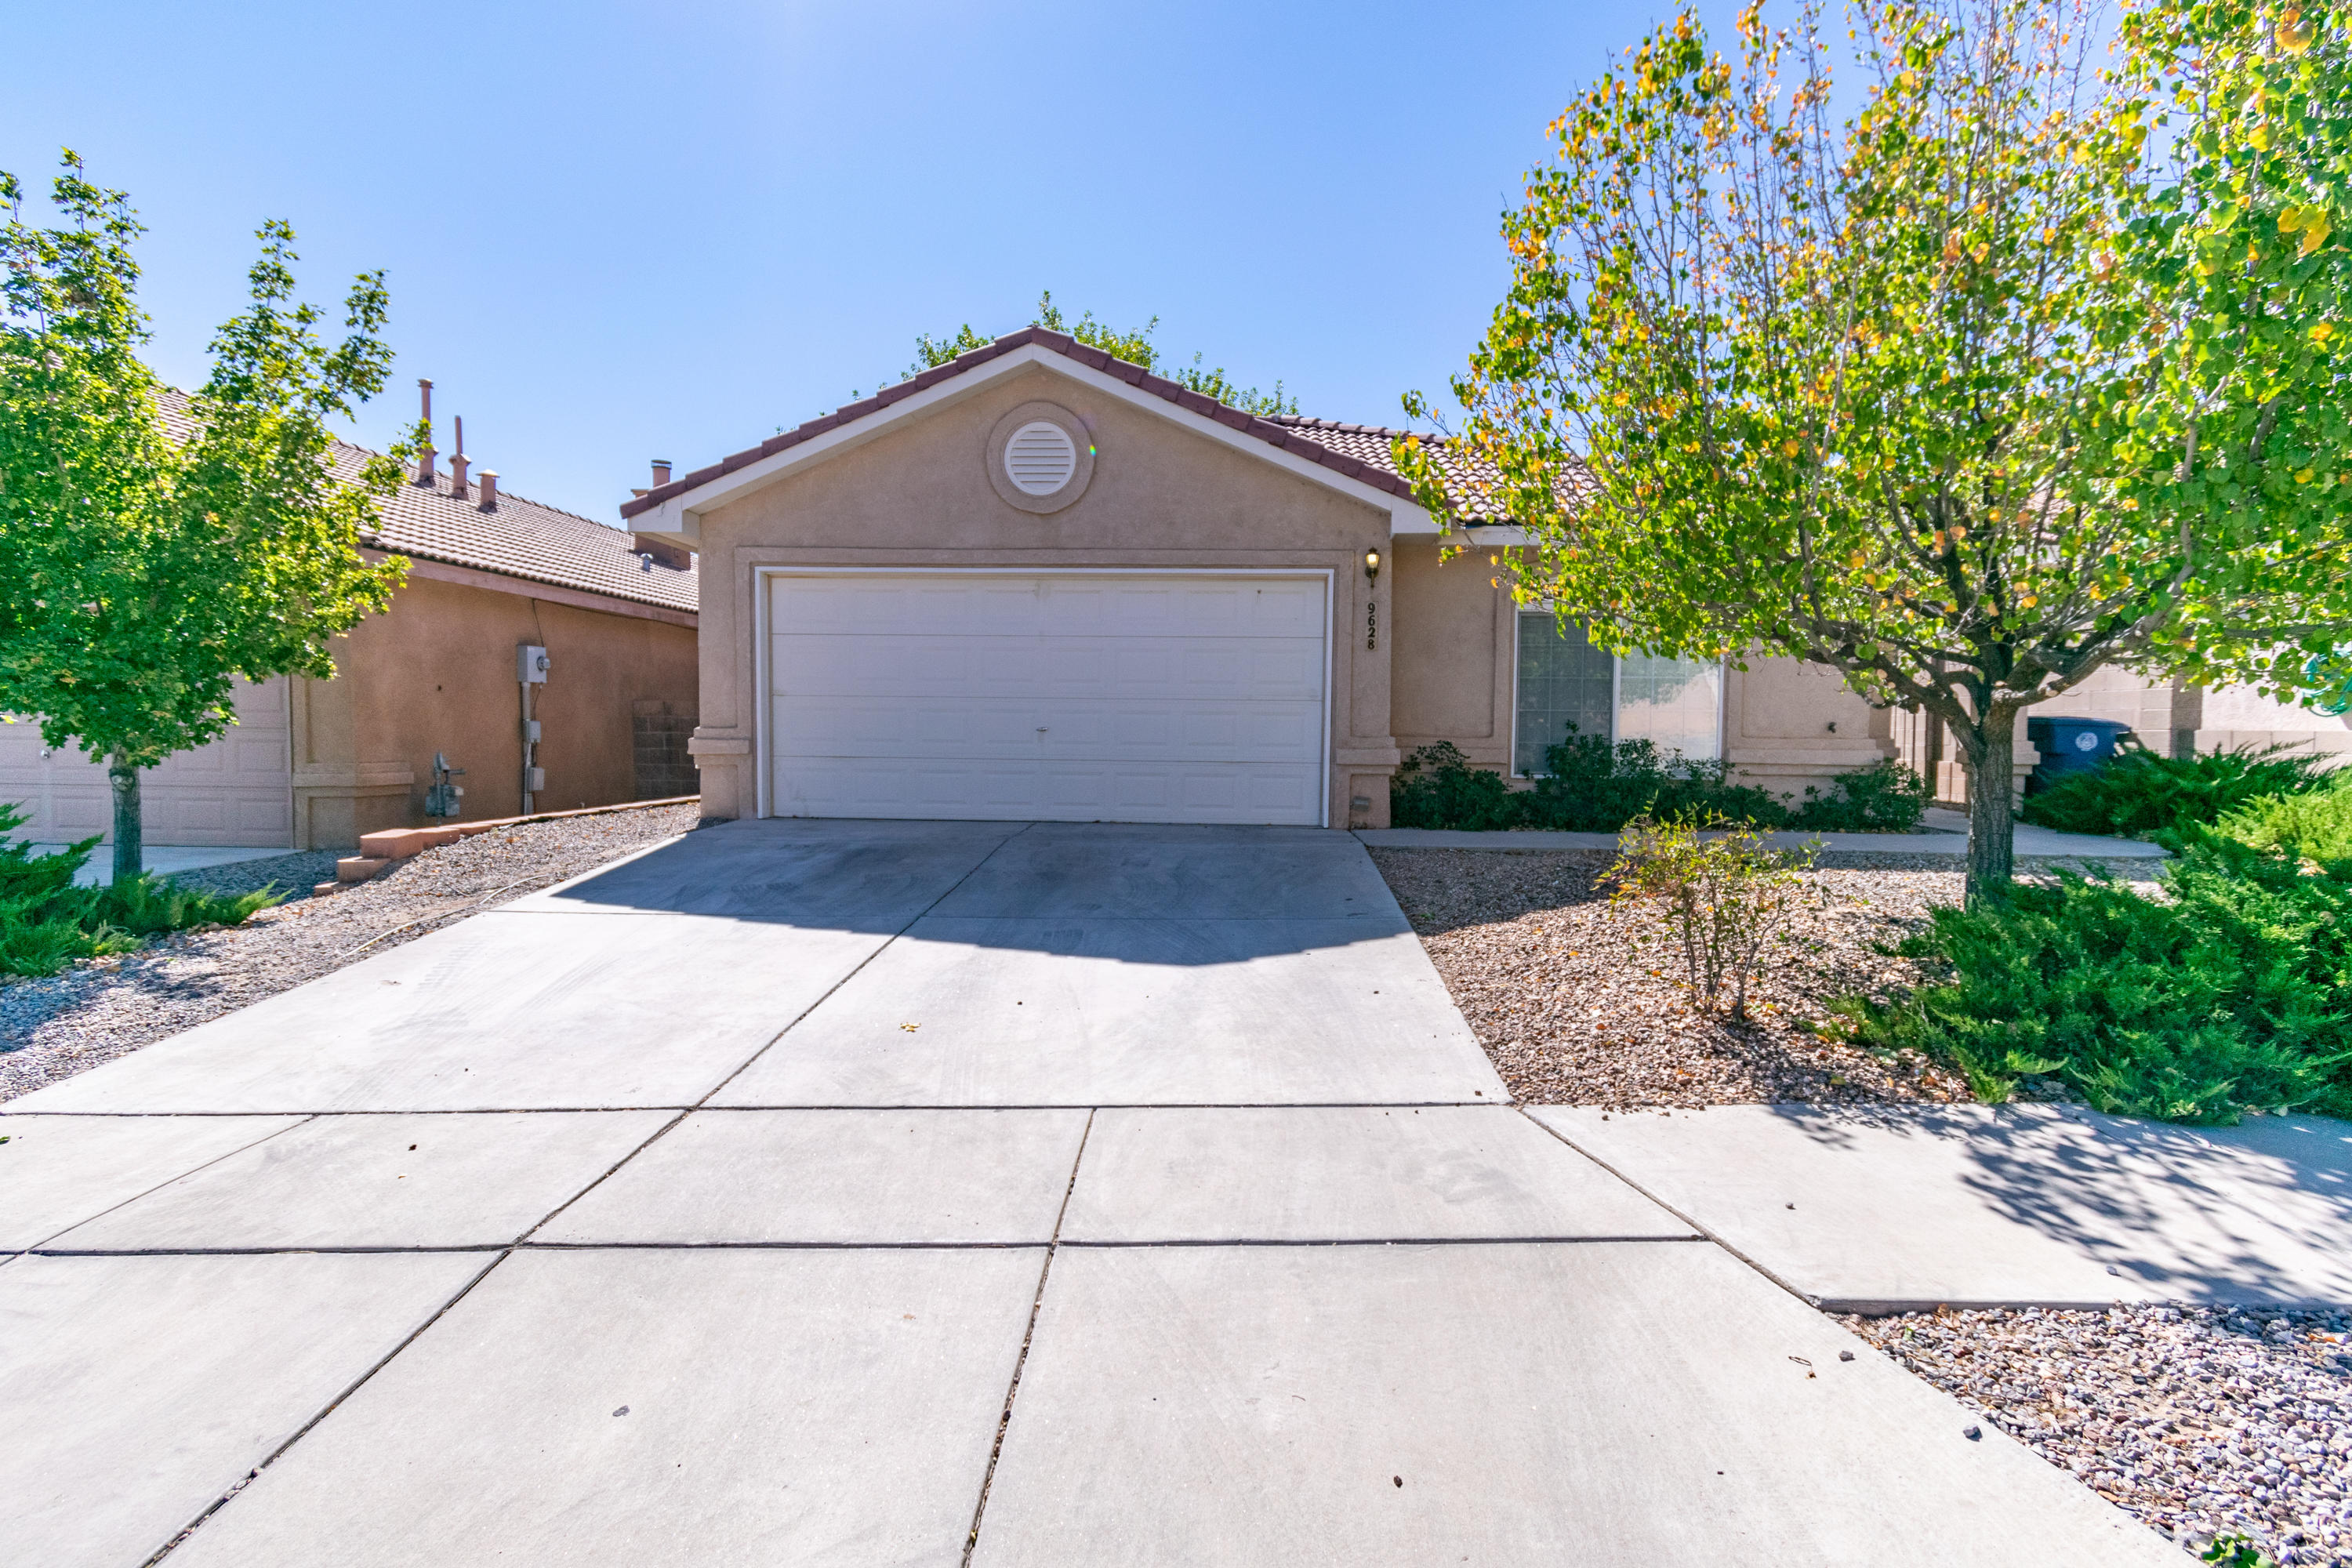 Beautiful 4 bedroom, 2 bath home in Sundoro Subdivision, freshly painted, new carpet, 2 living areas, 2 way fireplace, tile roof, nicho and refrigerated air.  Easy to show and ready for your buyer.